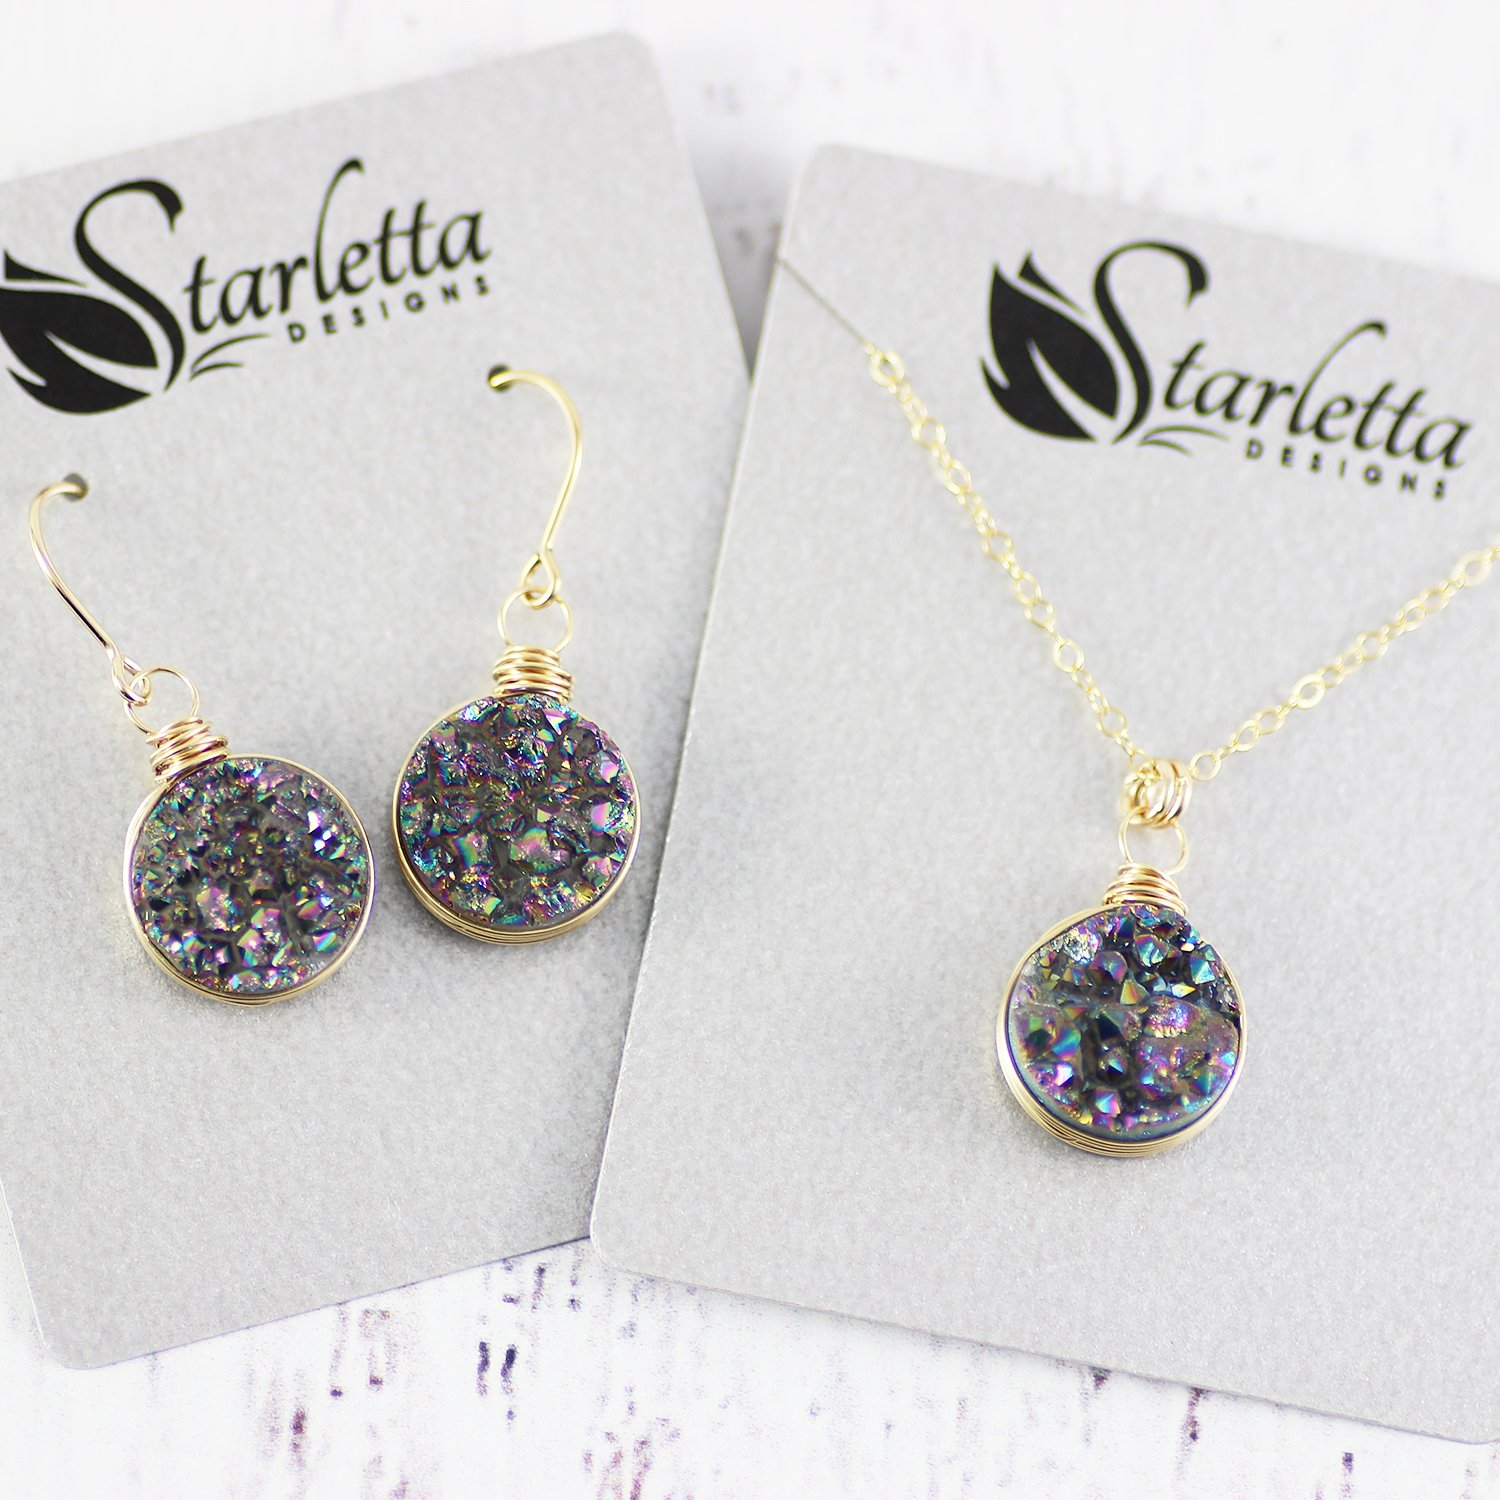 Rainbow Druzy Geode Gold Filled Pendant Necklace and Earrings Gift Set